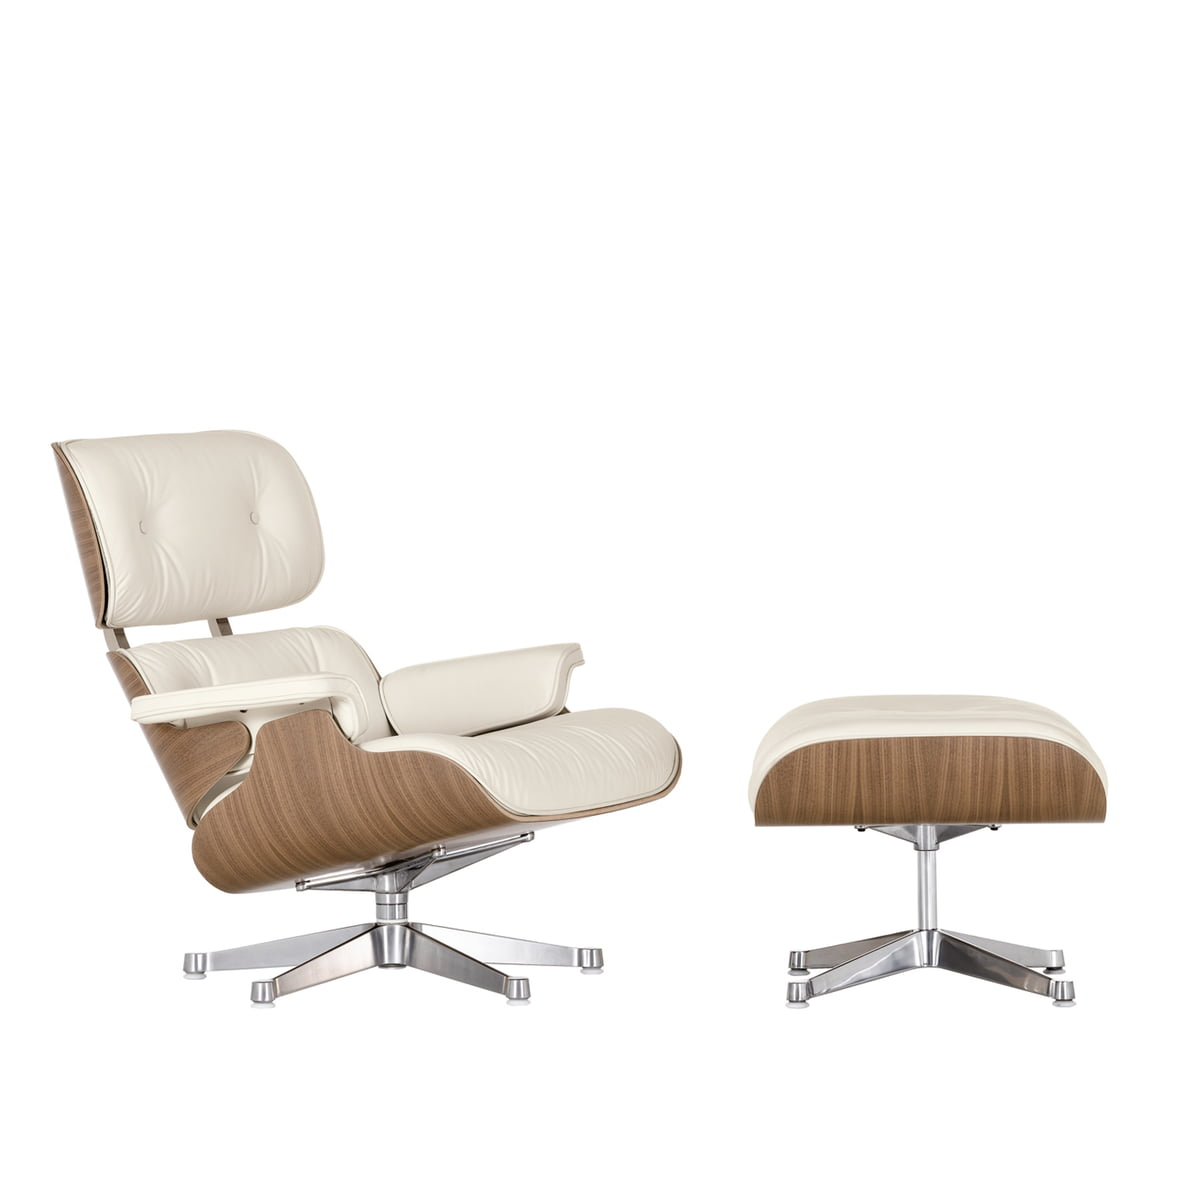 quarter wood prd miller view of products rear rendition with three brown ovw ottoman chair leather seating a herman and lounge eames ig veneer